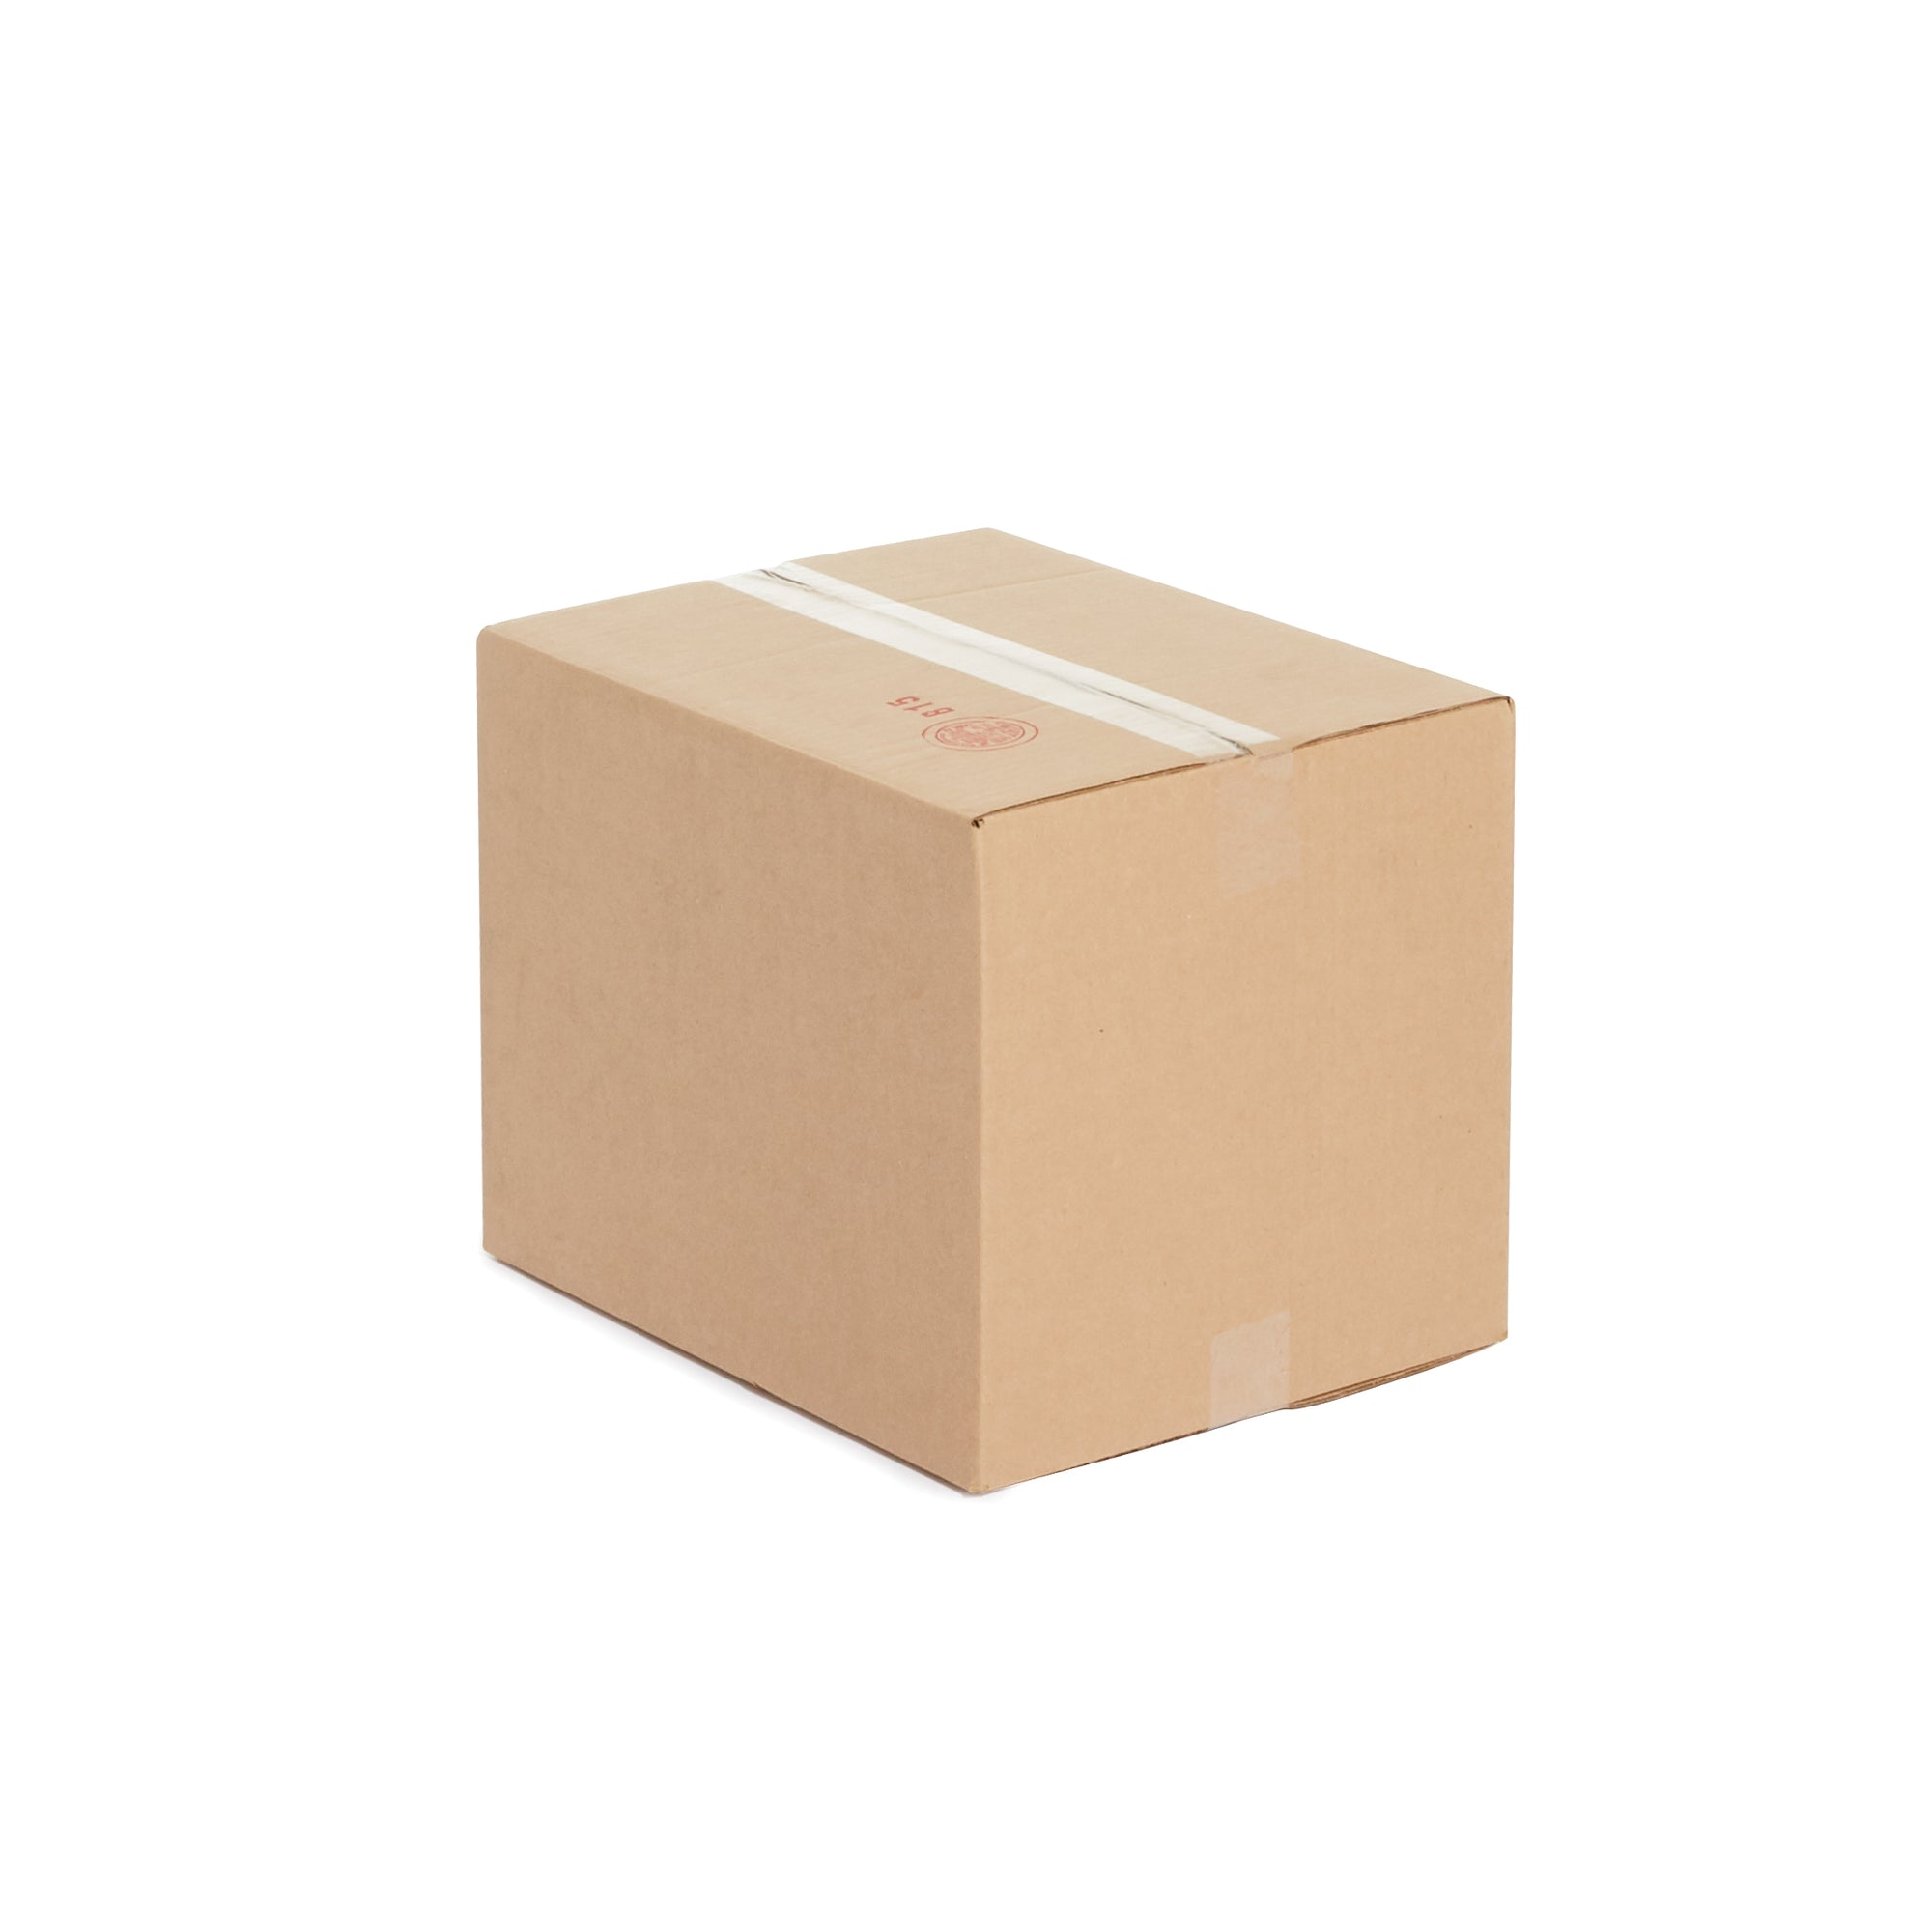 Book Box Packing R Us Moving Packing Shipping Storing Boxes